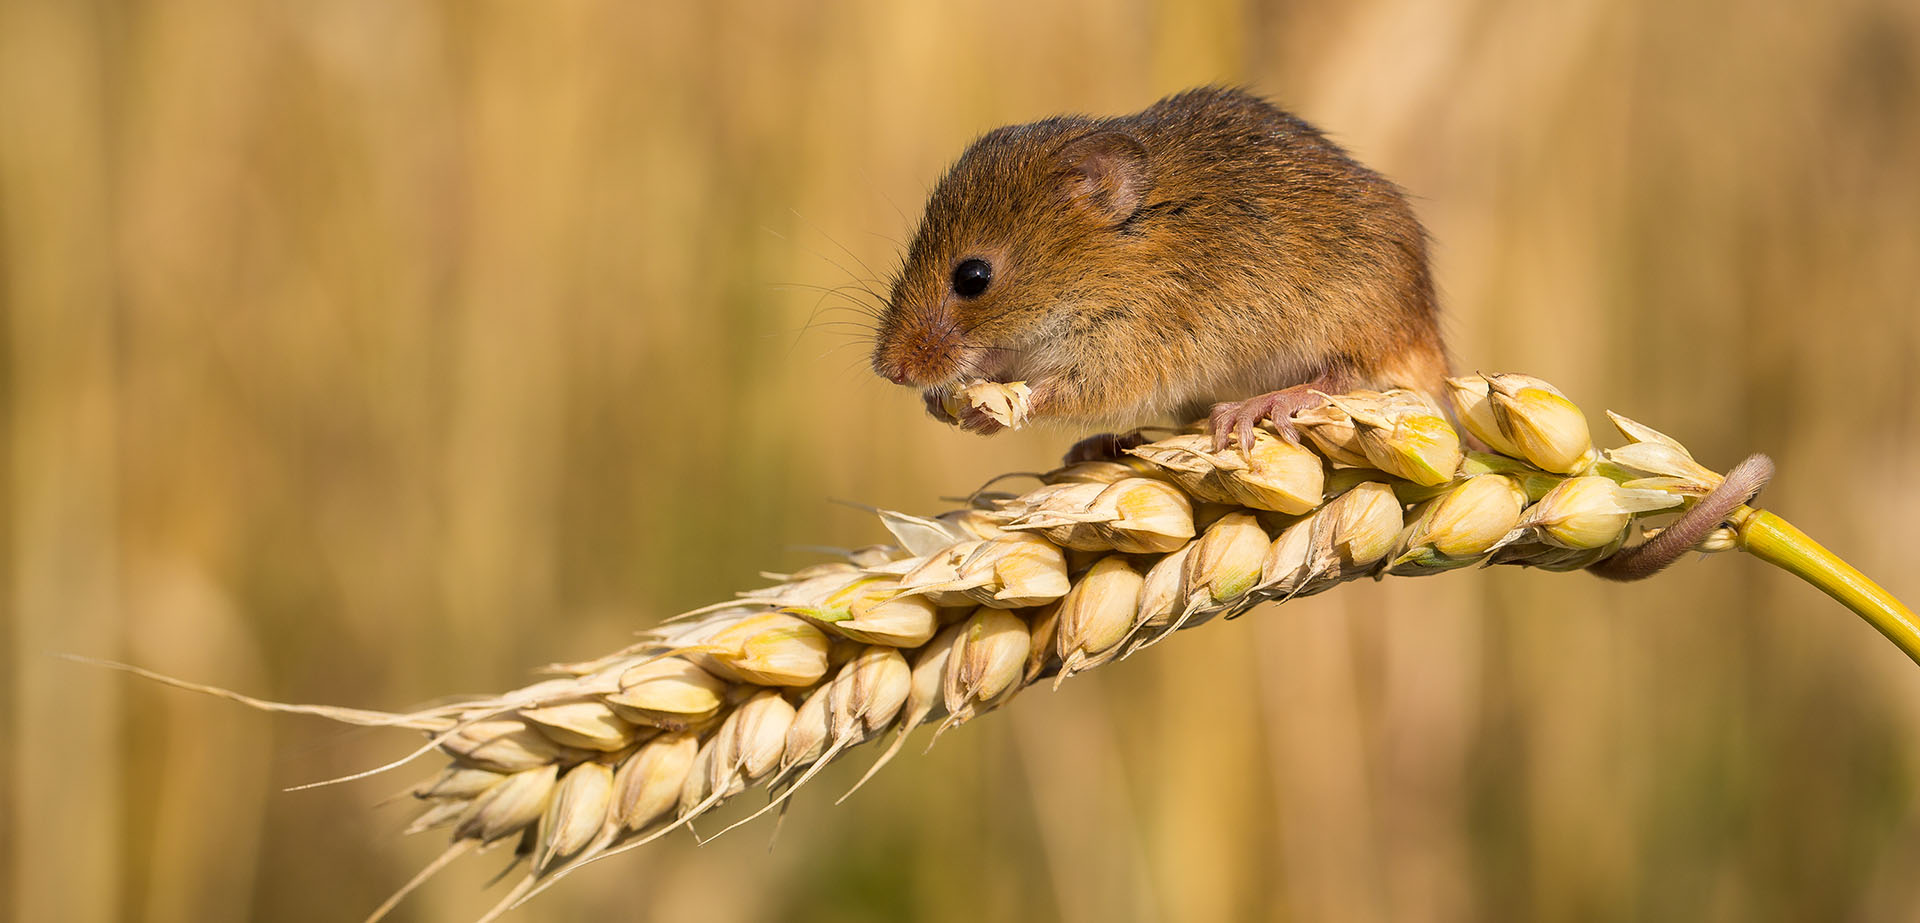 Harvest Mice Australian mice plague grain season